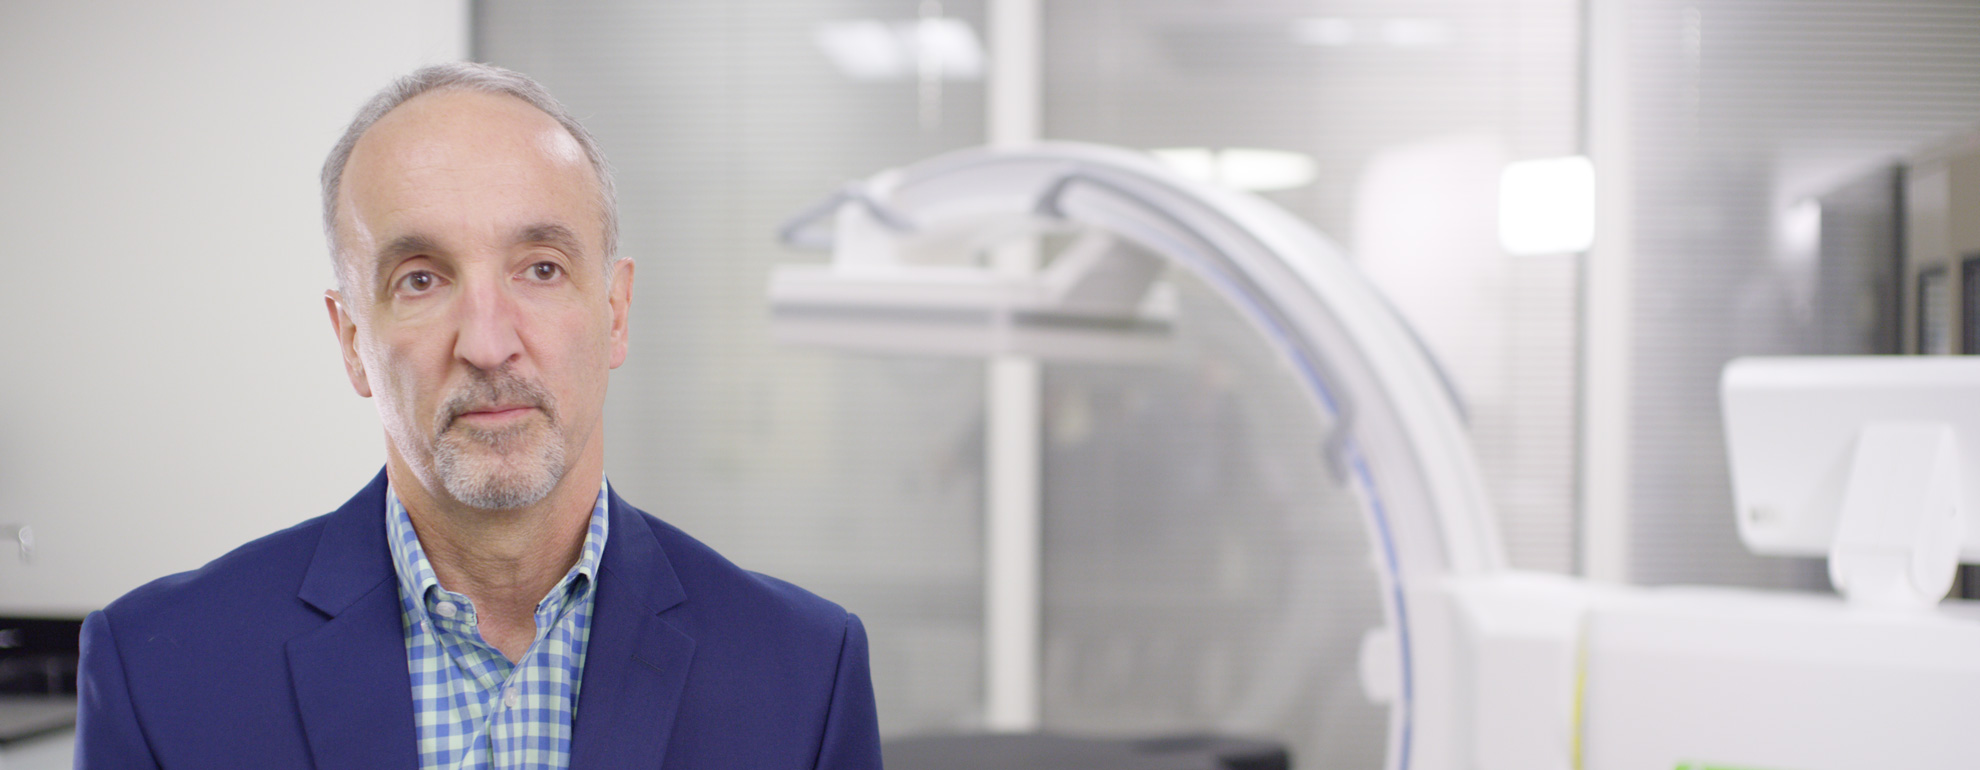 Dr. William Gray comments about the Eluvia Drug-Eluting Vascular Stent System.